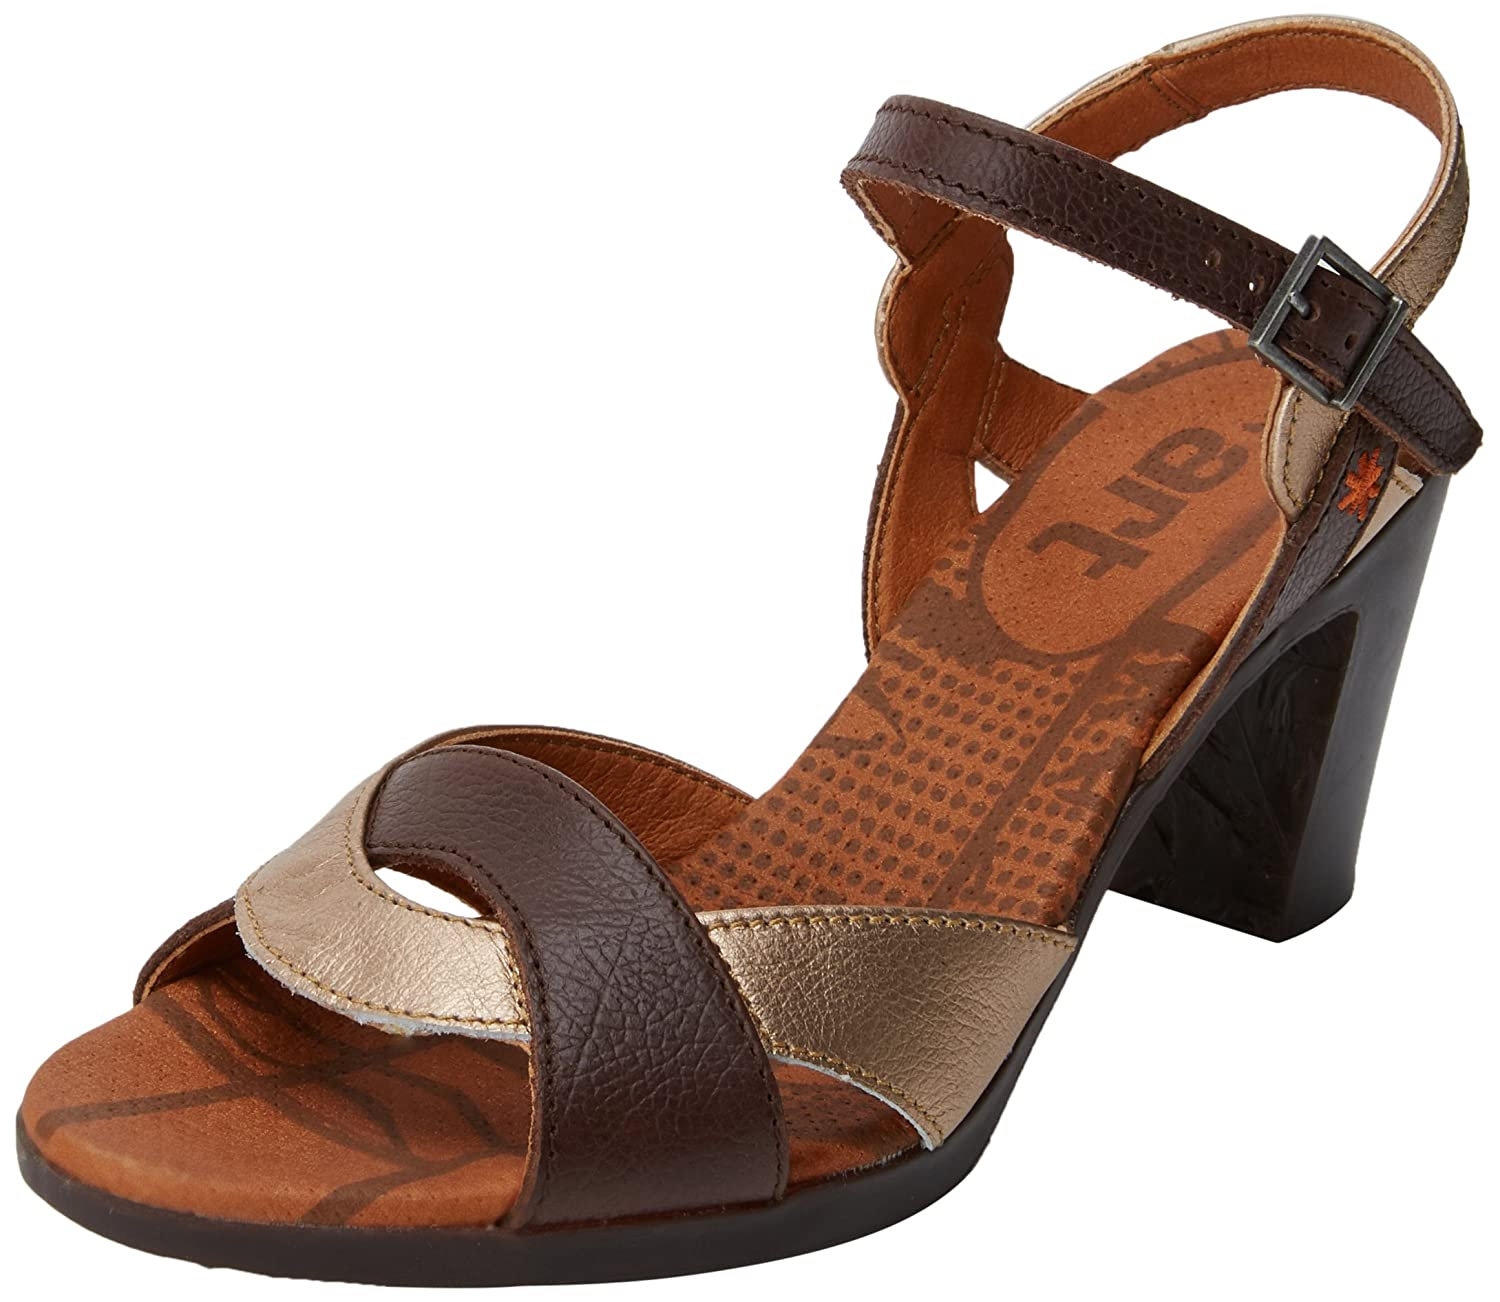 Art 0279 Memphis Rio, Sandales Bout Rio, Ouvert Femme (Brown) Marron Sandales (Brown) cc6cfc8 - boatplans.space